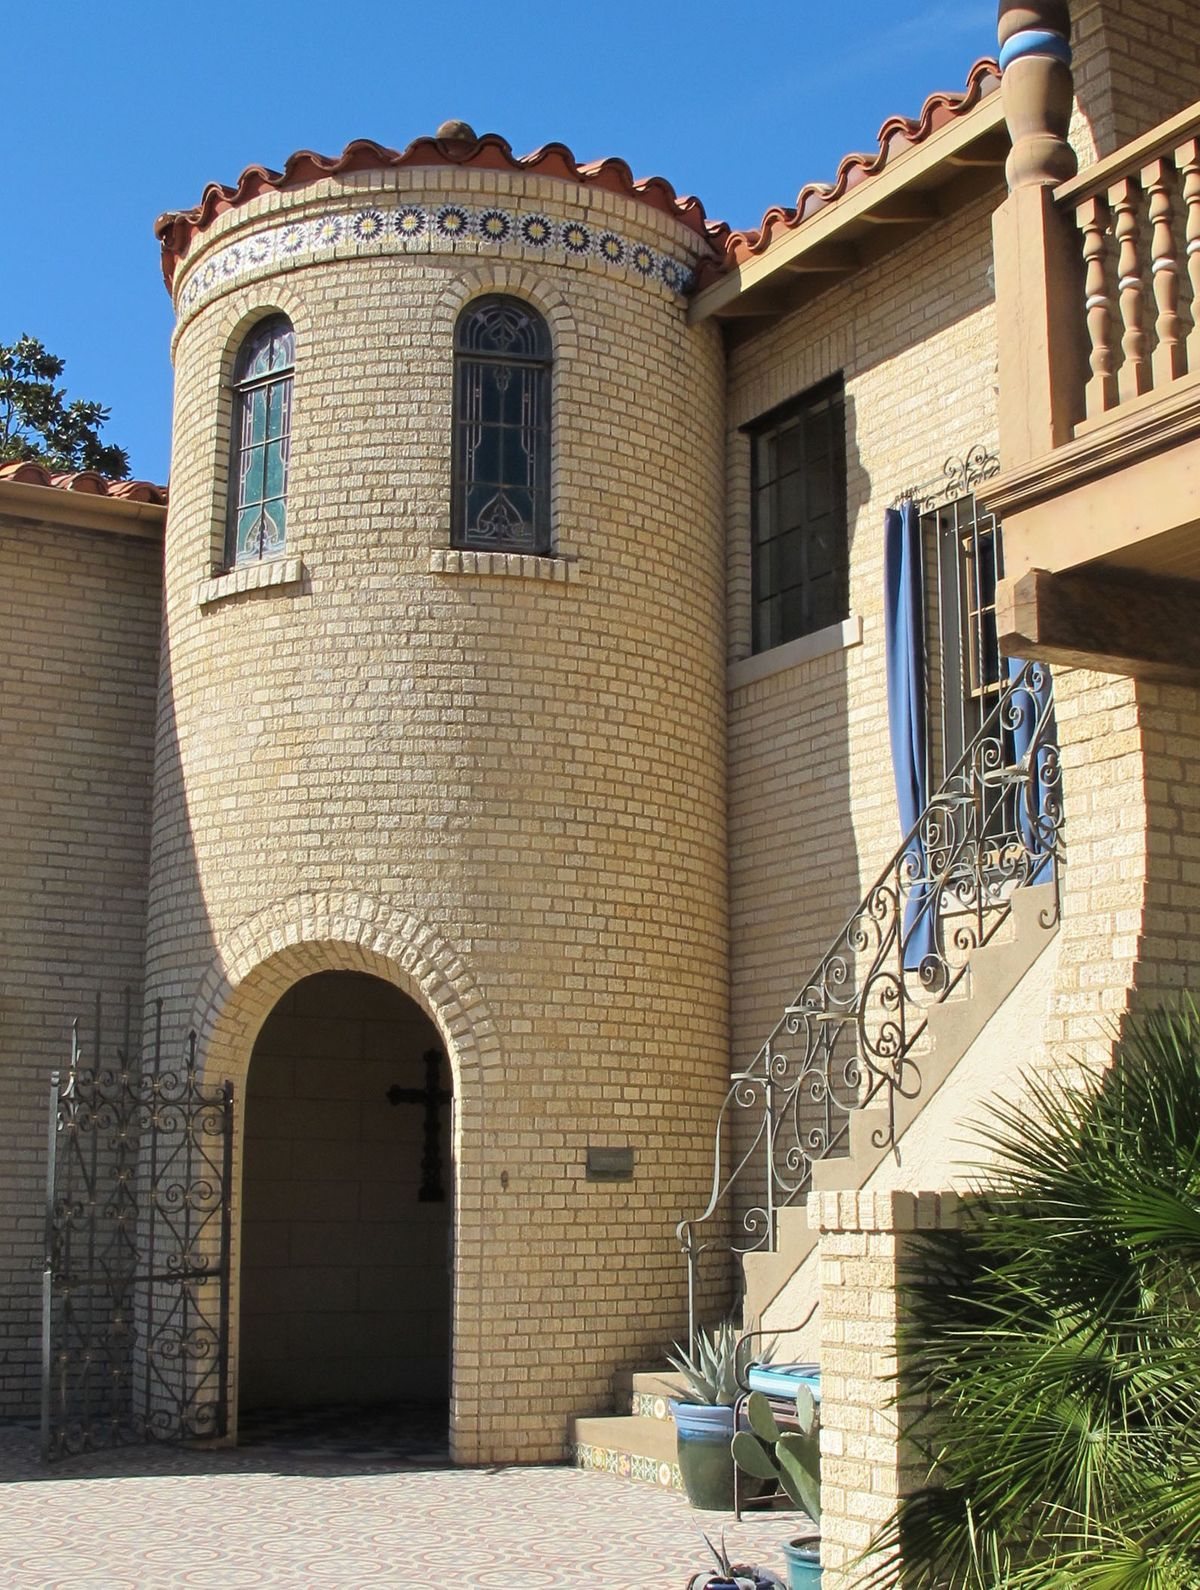 Historic Hutsell Mediterranean Home Photo Video Shoot Location 5.jpg